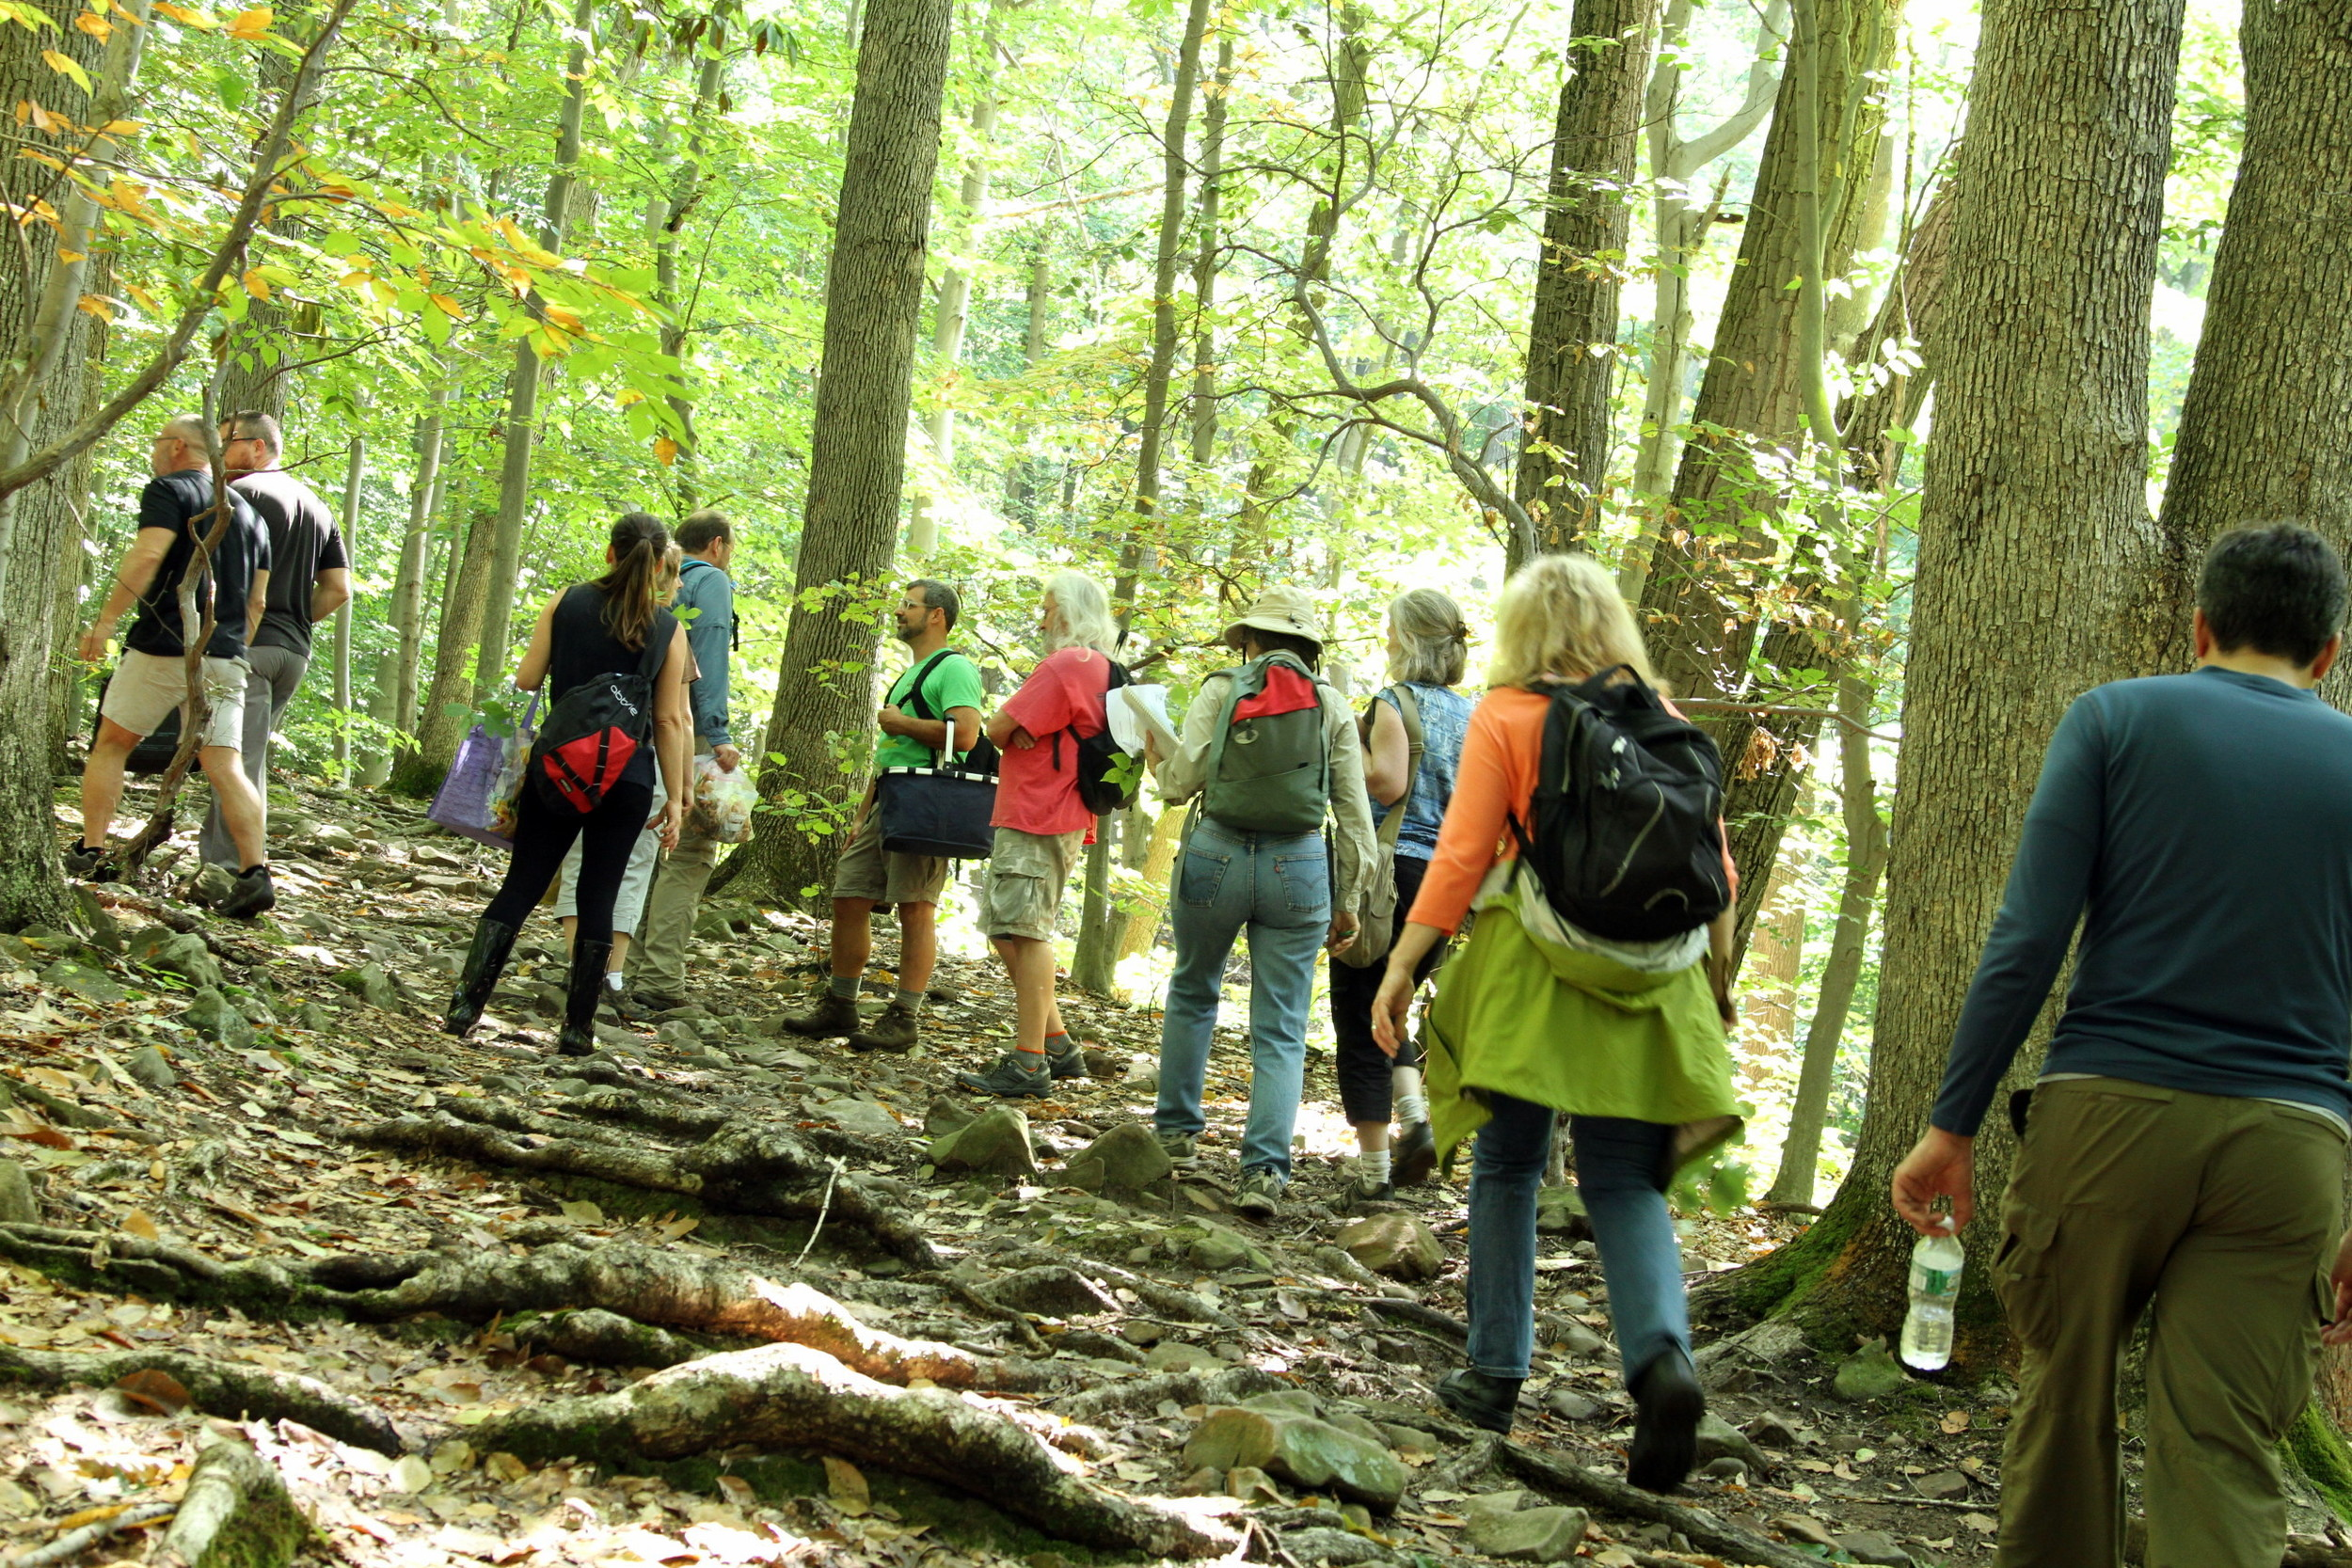 Our group of foraging hikers